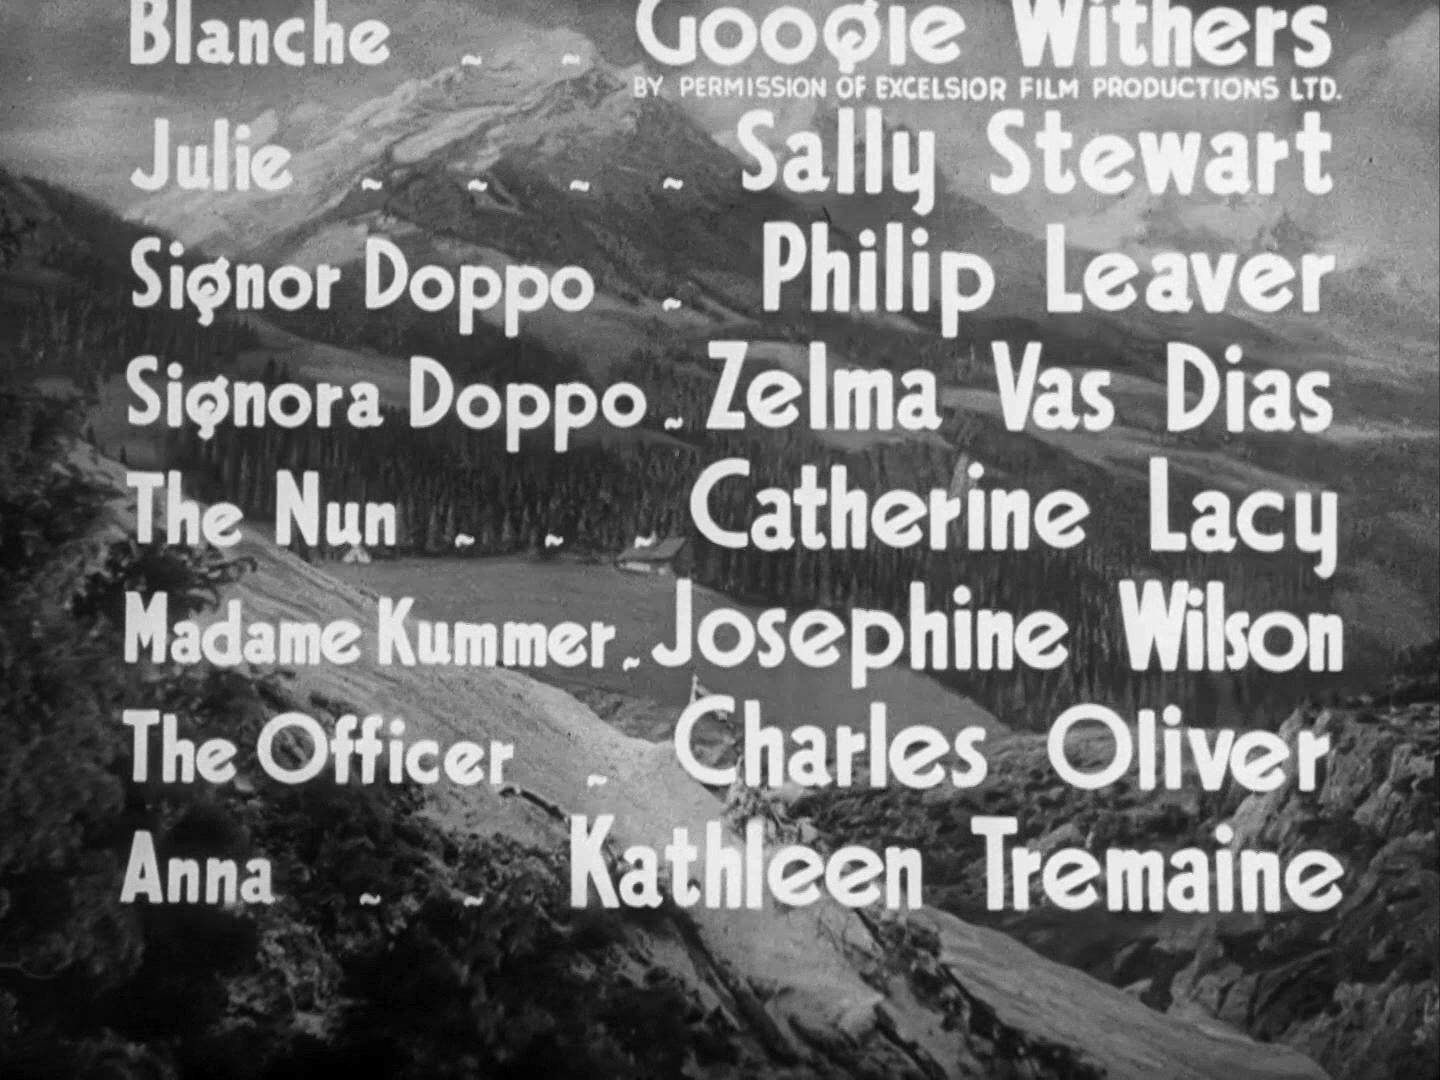 Main title from The Lady Vanishes (1938) (8). Catherine Lacey, Josephine Wilson, Charles Oliver, Kathleen Tremaine